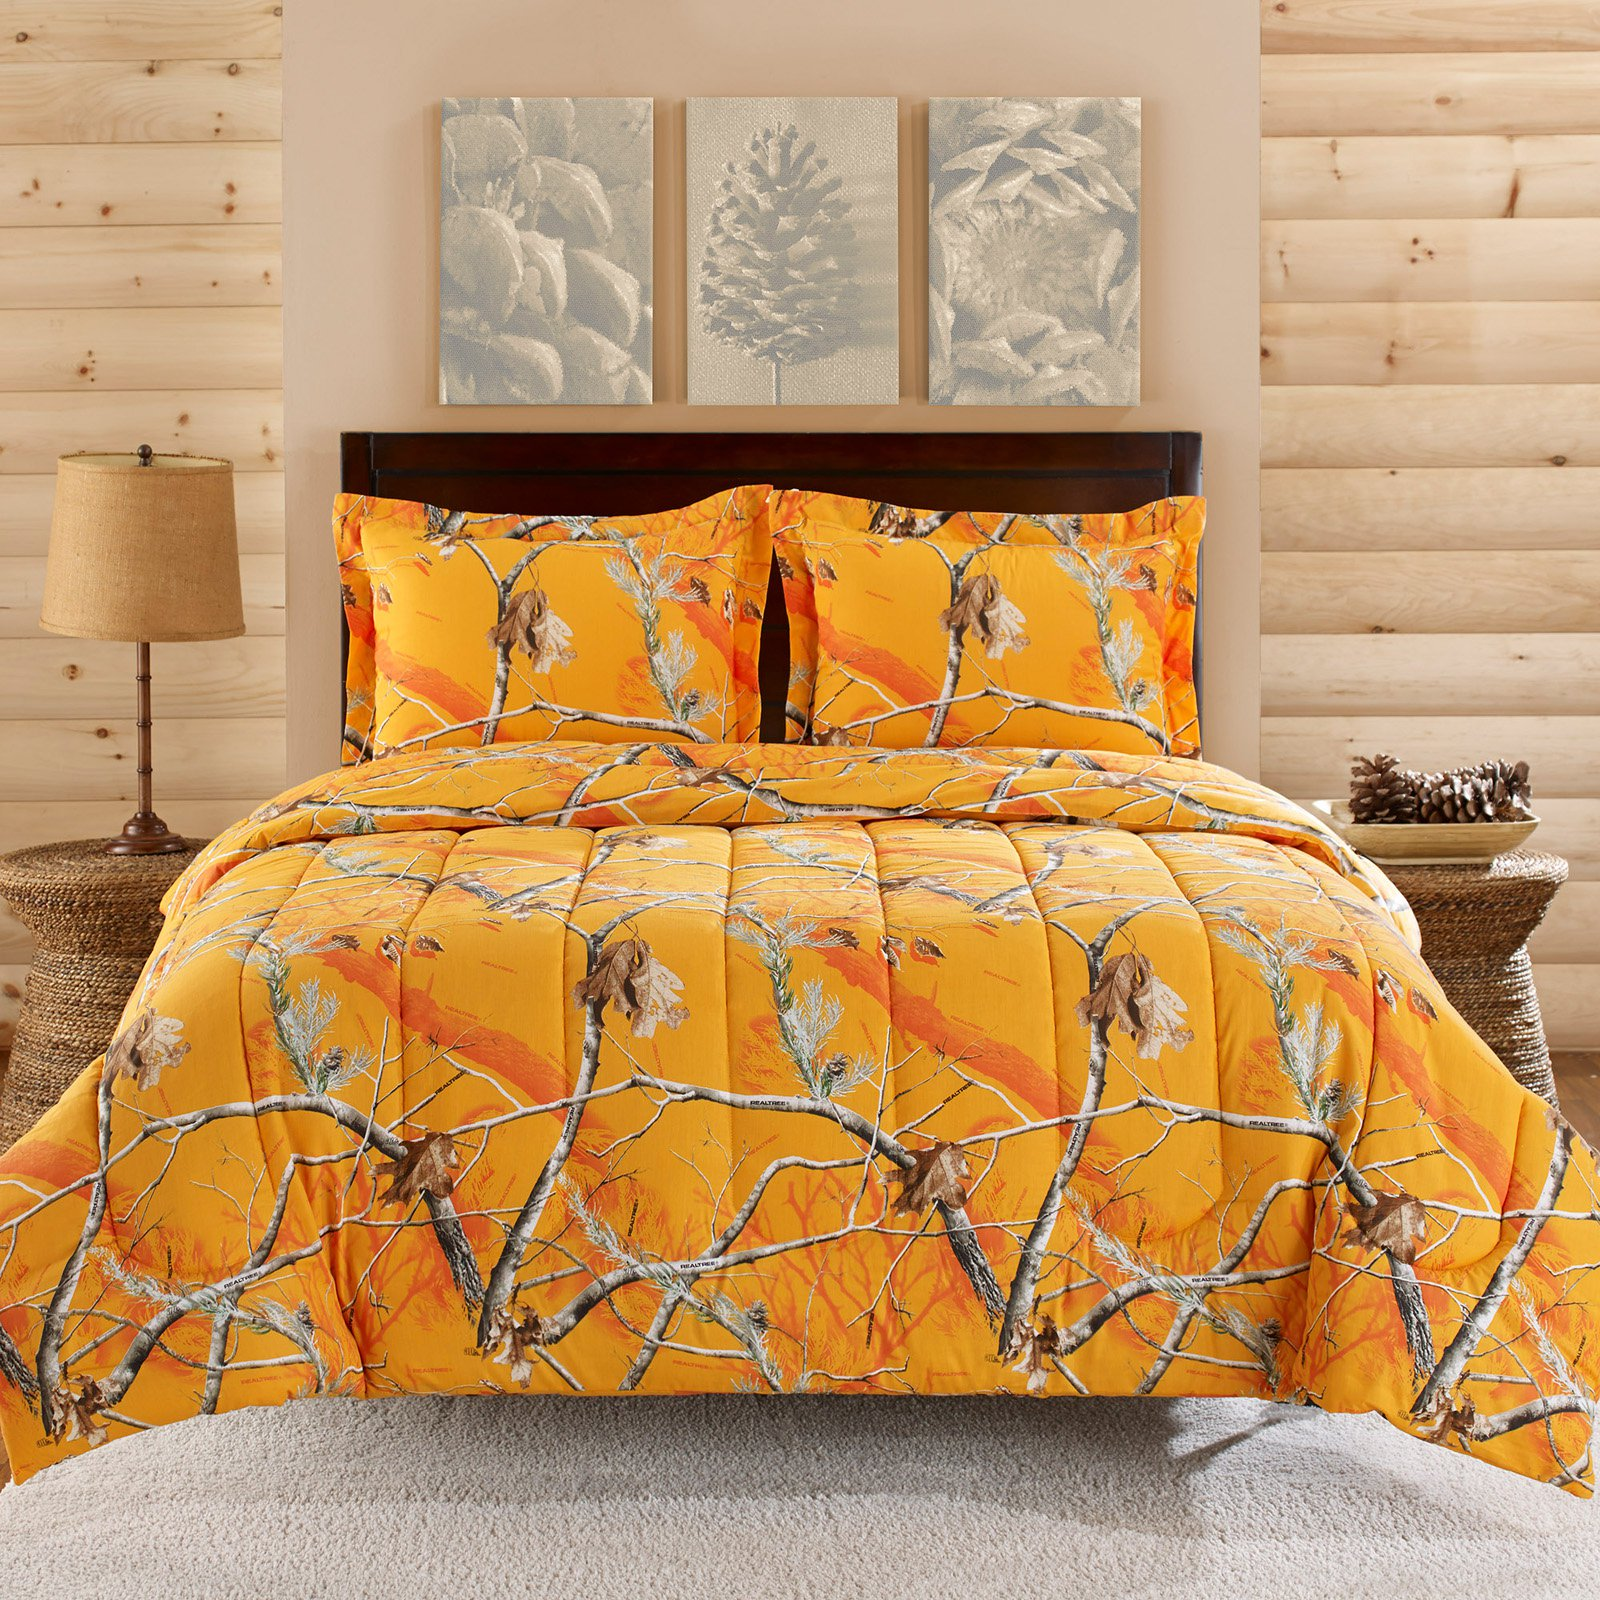 Comforter Set by Realtree